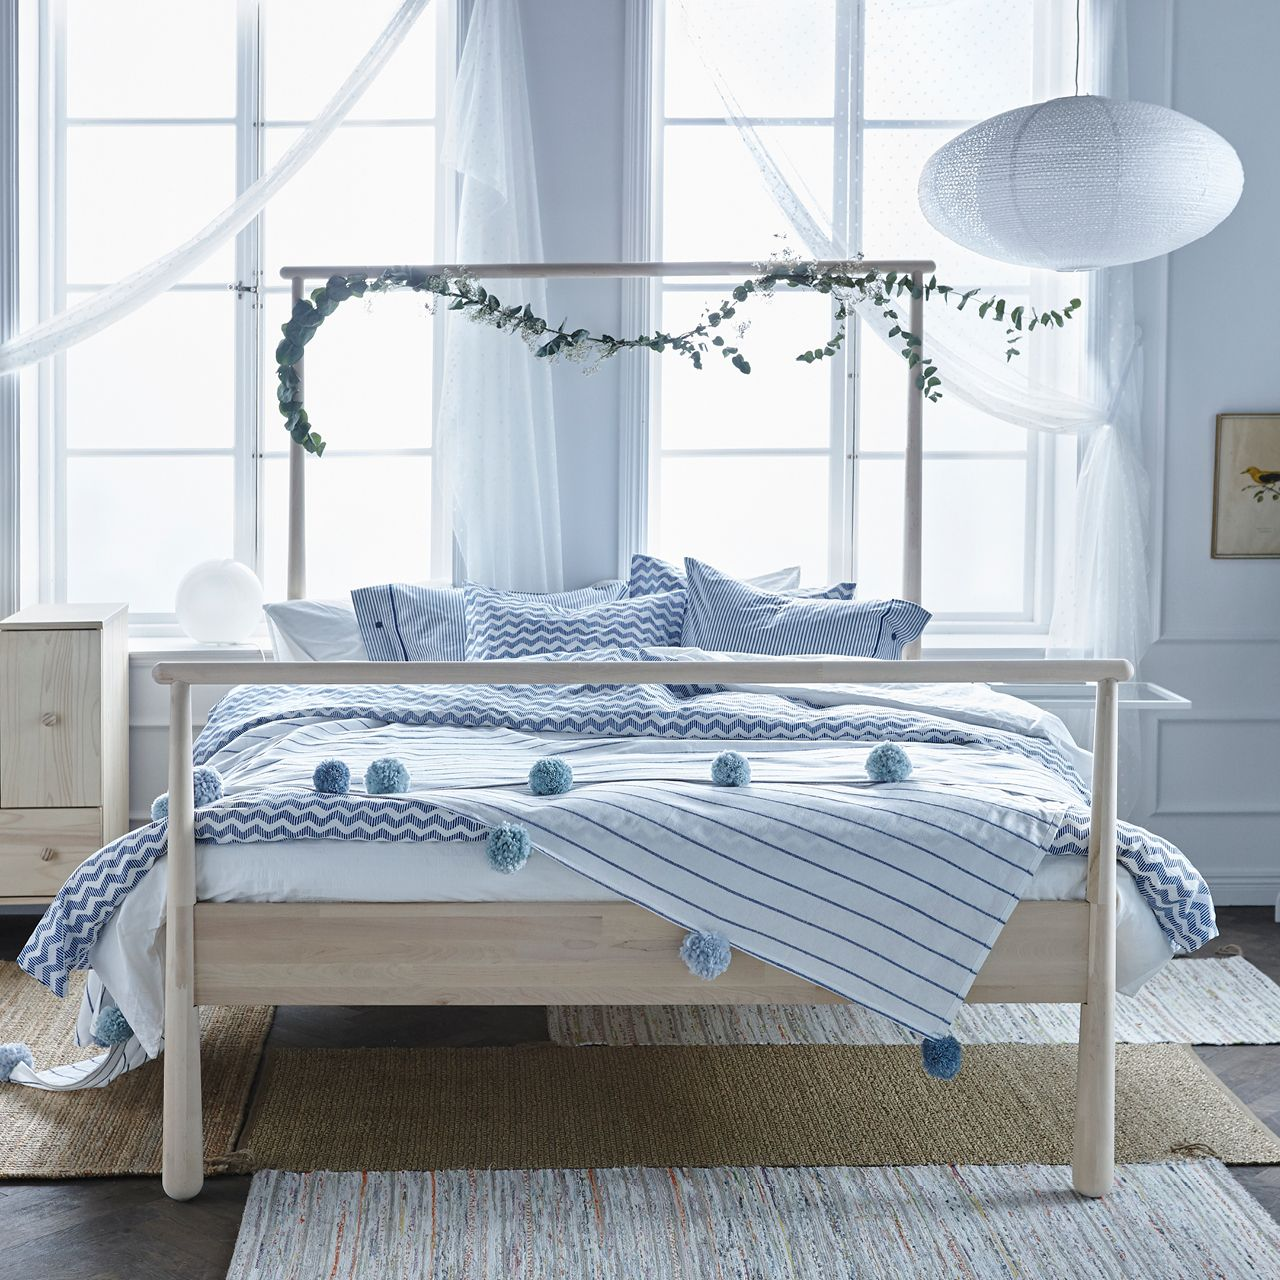 gj ra bed frame birch l nset bedrooms bed frames and room. Black Bedroom Furniture Sets. Home Design Ideas